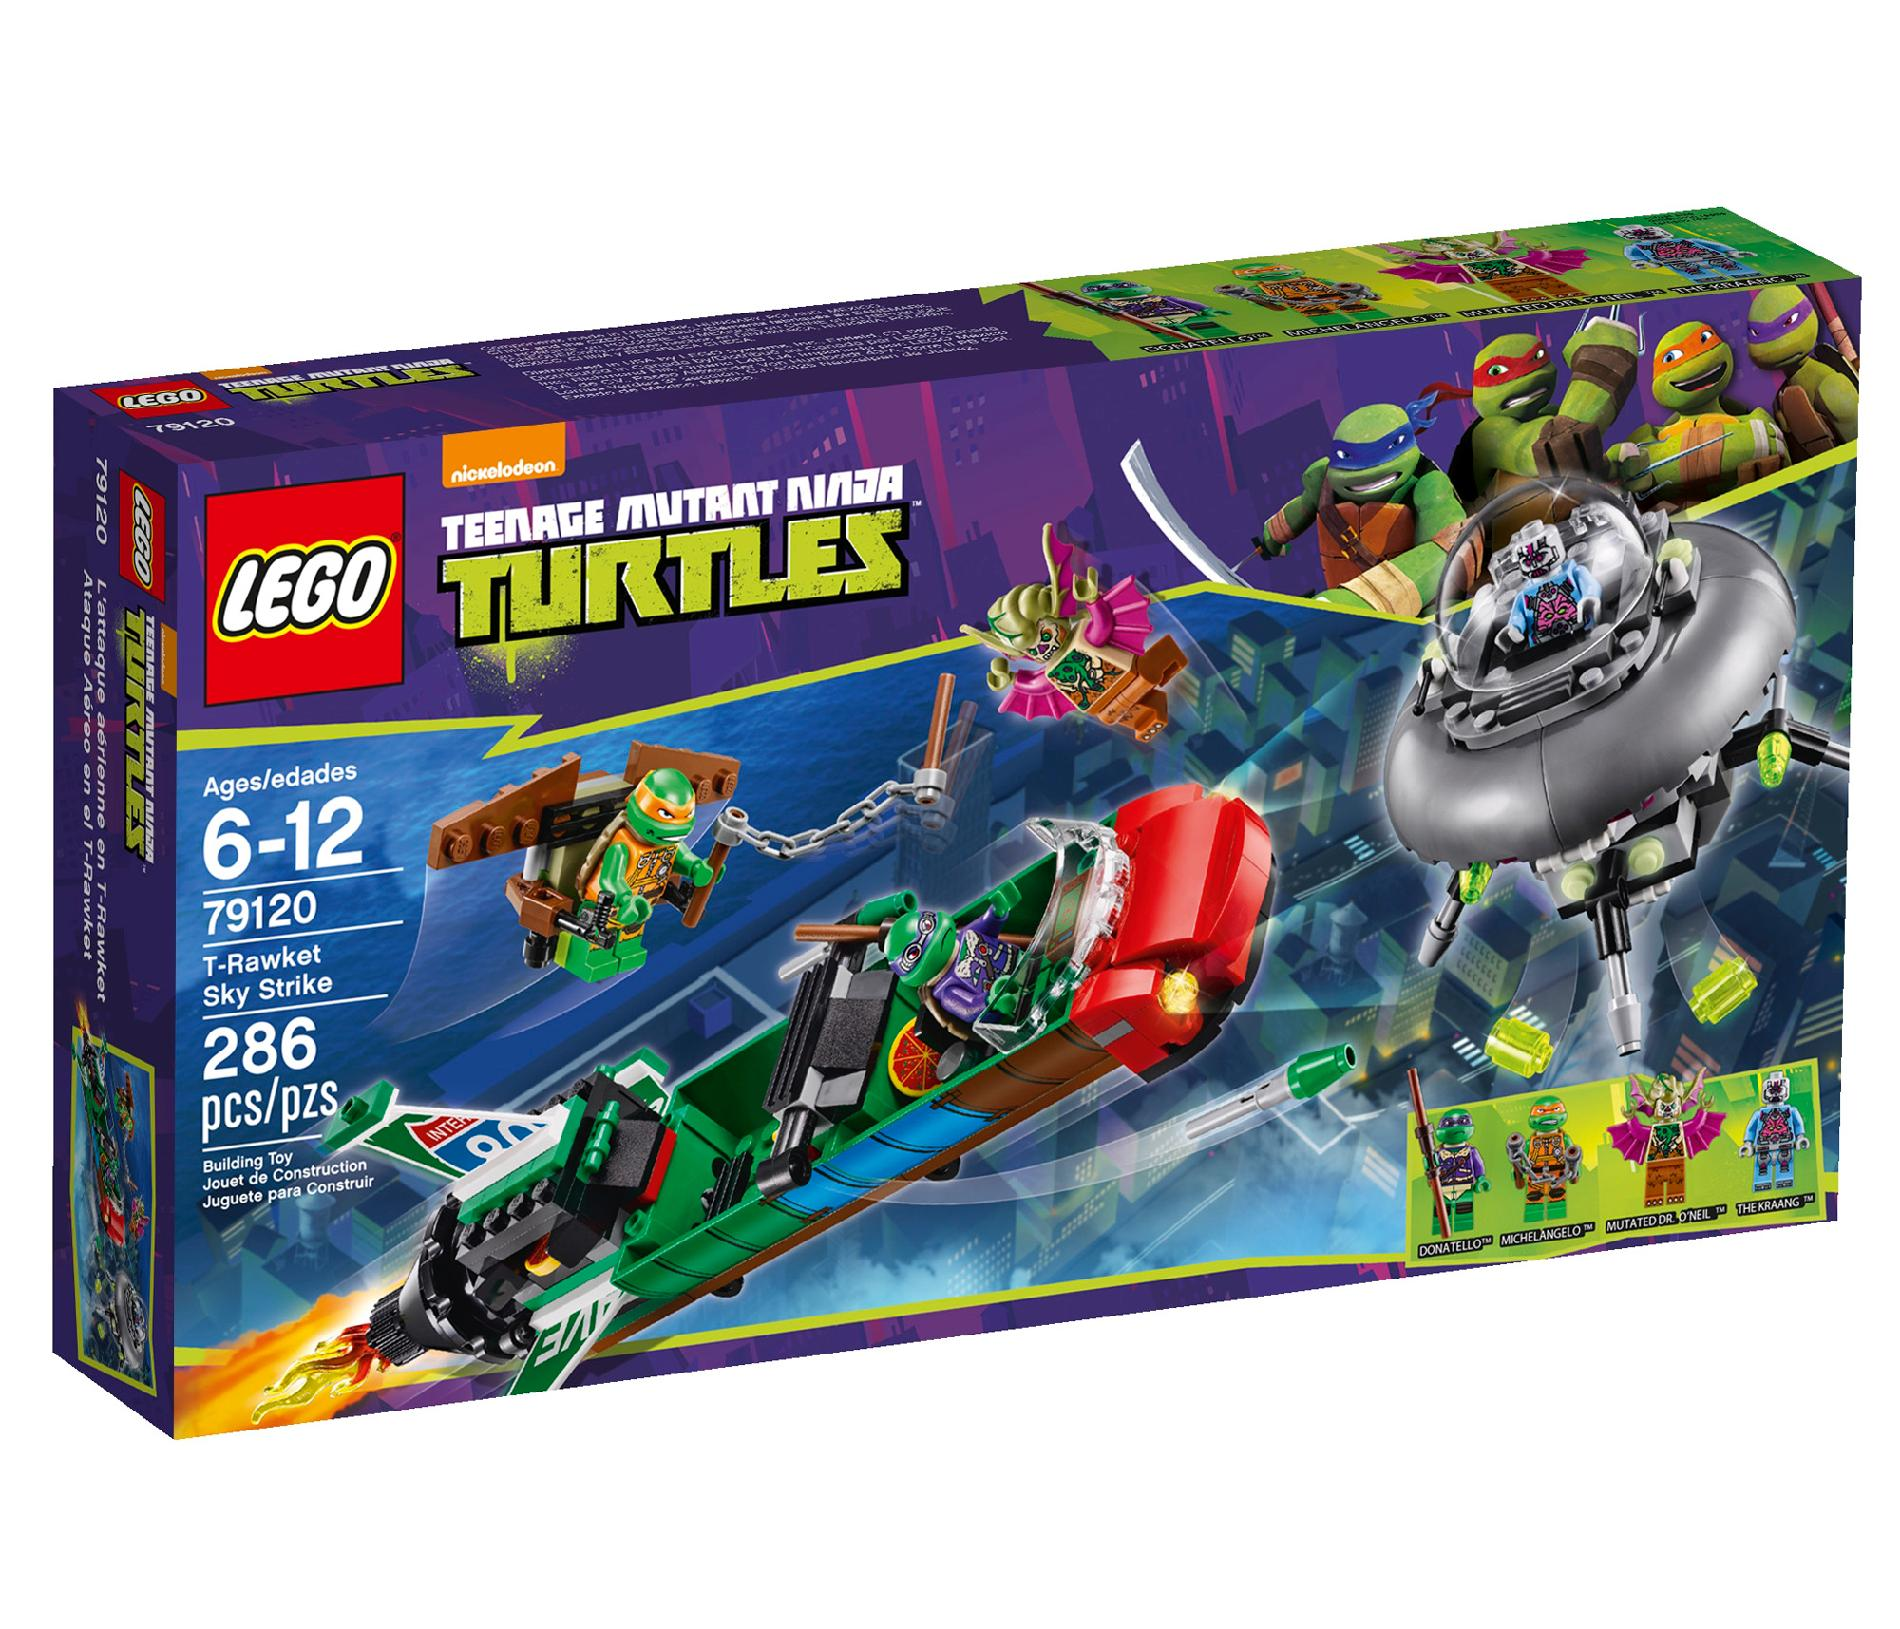 Lego Teenage Ninja Turtles Toys : Lego teenage mutant ninja turtles™ t rawket sky strike